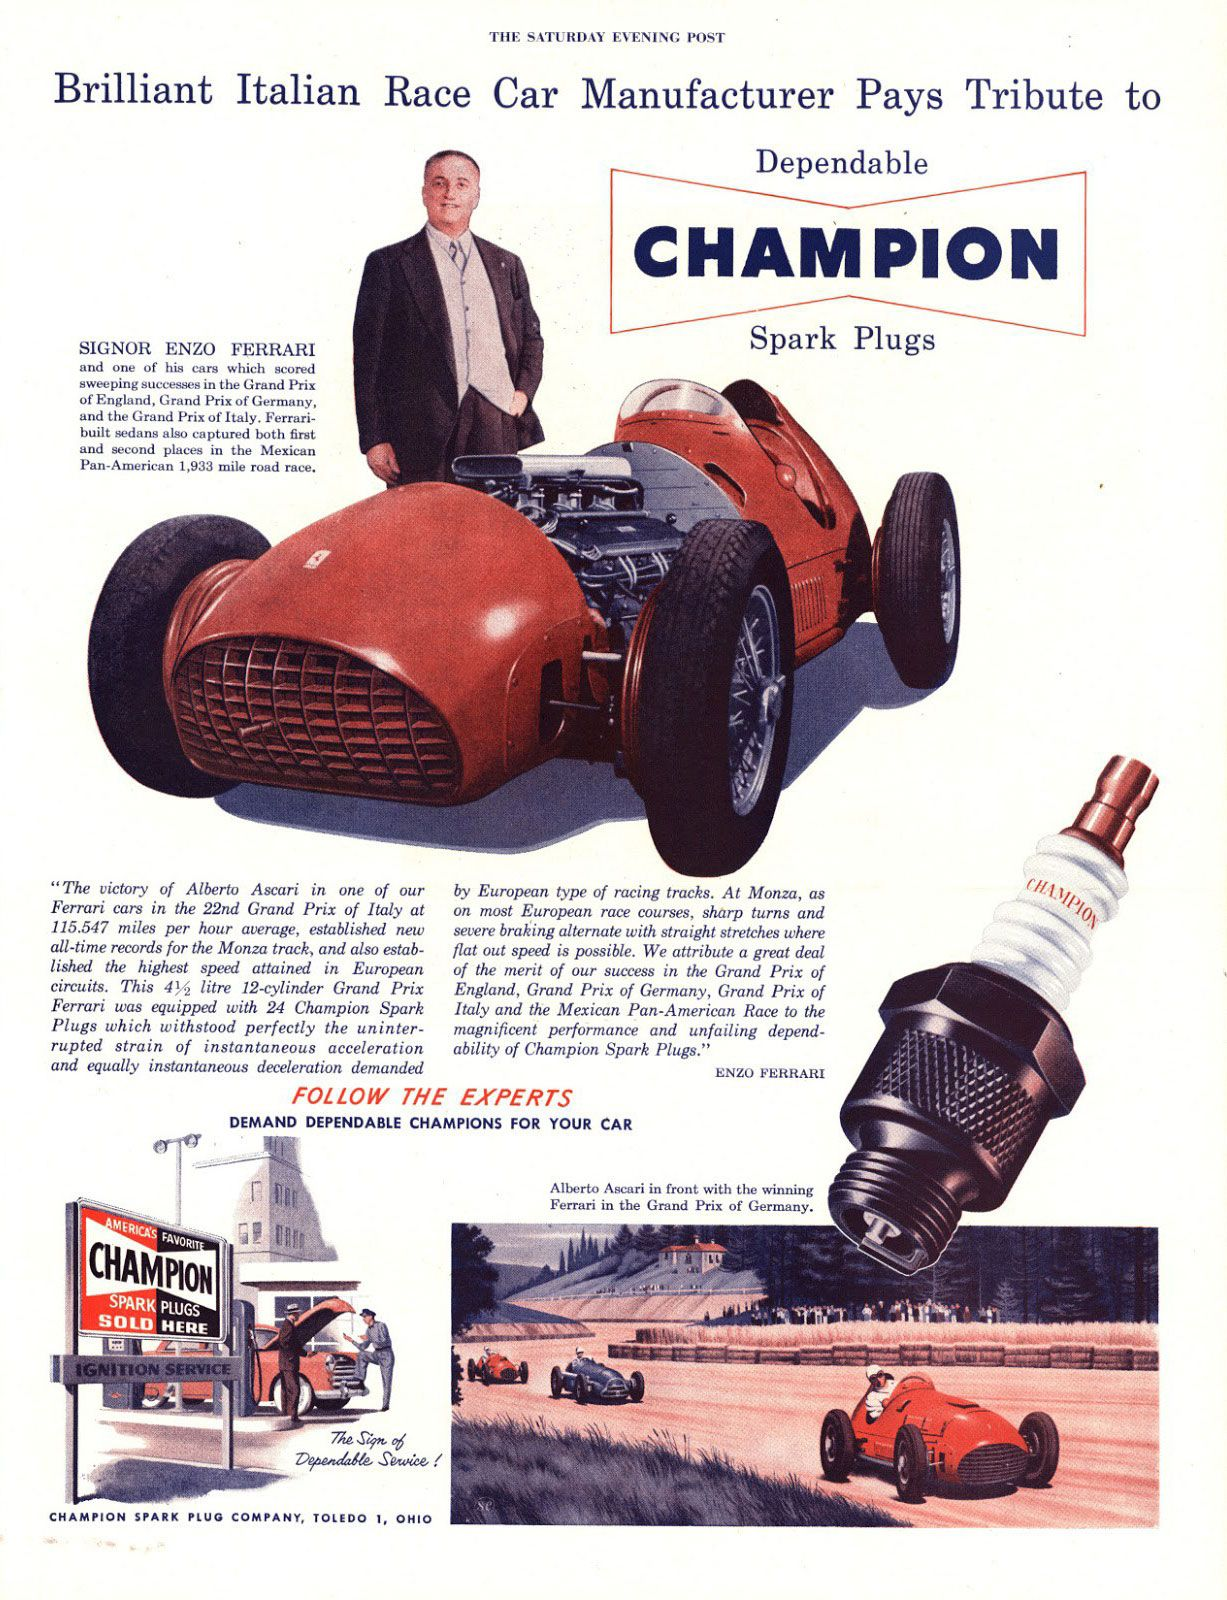 Brilliant Italian Race Car Manufacturer Pays Tribute to Dependable Champion Spark Plugs  'The victory /of Alberto Ascari in one of our Ferrari cars in the 22nd Grand Prix of Italy at 115.547 miles per hour average, established new all-time records for the Monza track, and also established the highest speed attained in European circuits. This 4½ litre 12-cylinder Grand Prix Ferrari was equipped with 24 Champion Spark Plugs which withstood perfectly the uninterrupted strain of instantaneous acceleration and equally instaneous deceleration demanded by European type of racing tracks. At Monza, as on most European race courses, sharp turns and severe braking alternate with straight stretches where flat out speed is possible. We attribute a great deal of the merit of our success in the Grand Prix of England, Grand Prix of Germany, Grand Prix of Italy and the Monza Pan-American Race to the magnificent performance and unfailing dependability of Champion Spark Plugs.' —Enzo Ferrari  Follow the Experts Demand Dependable Champions for your Car.